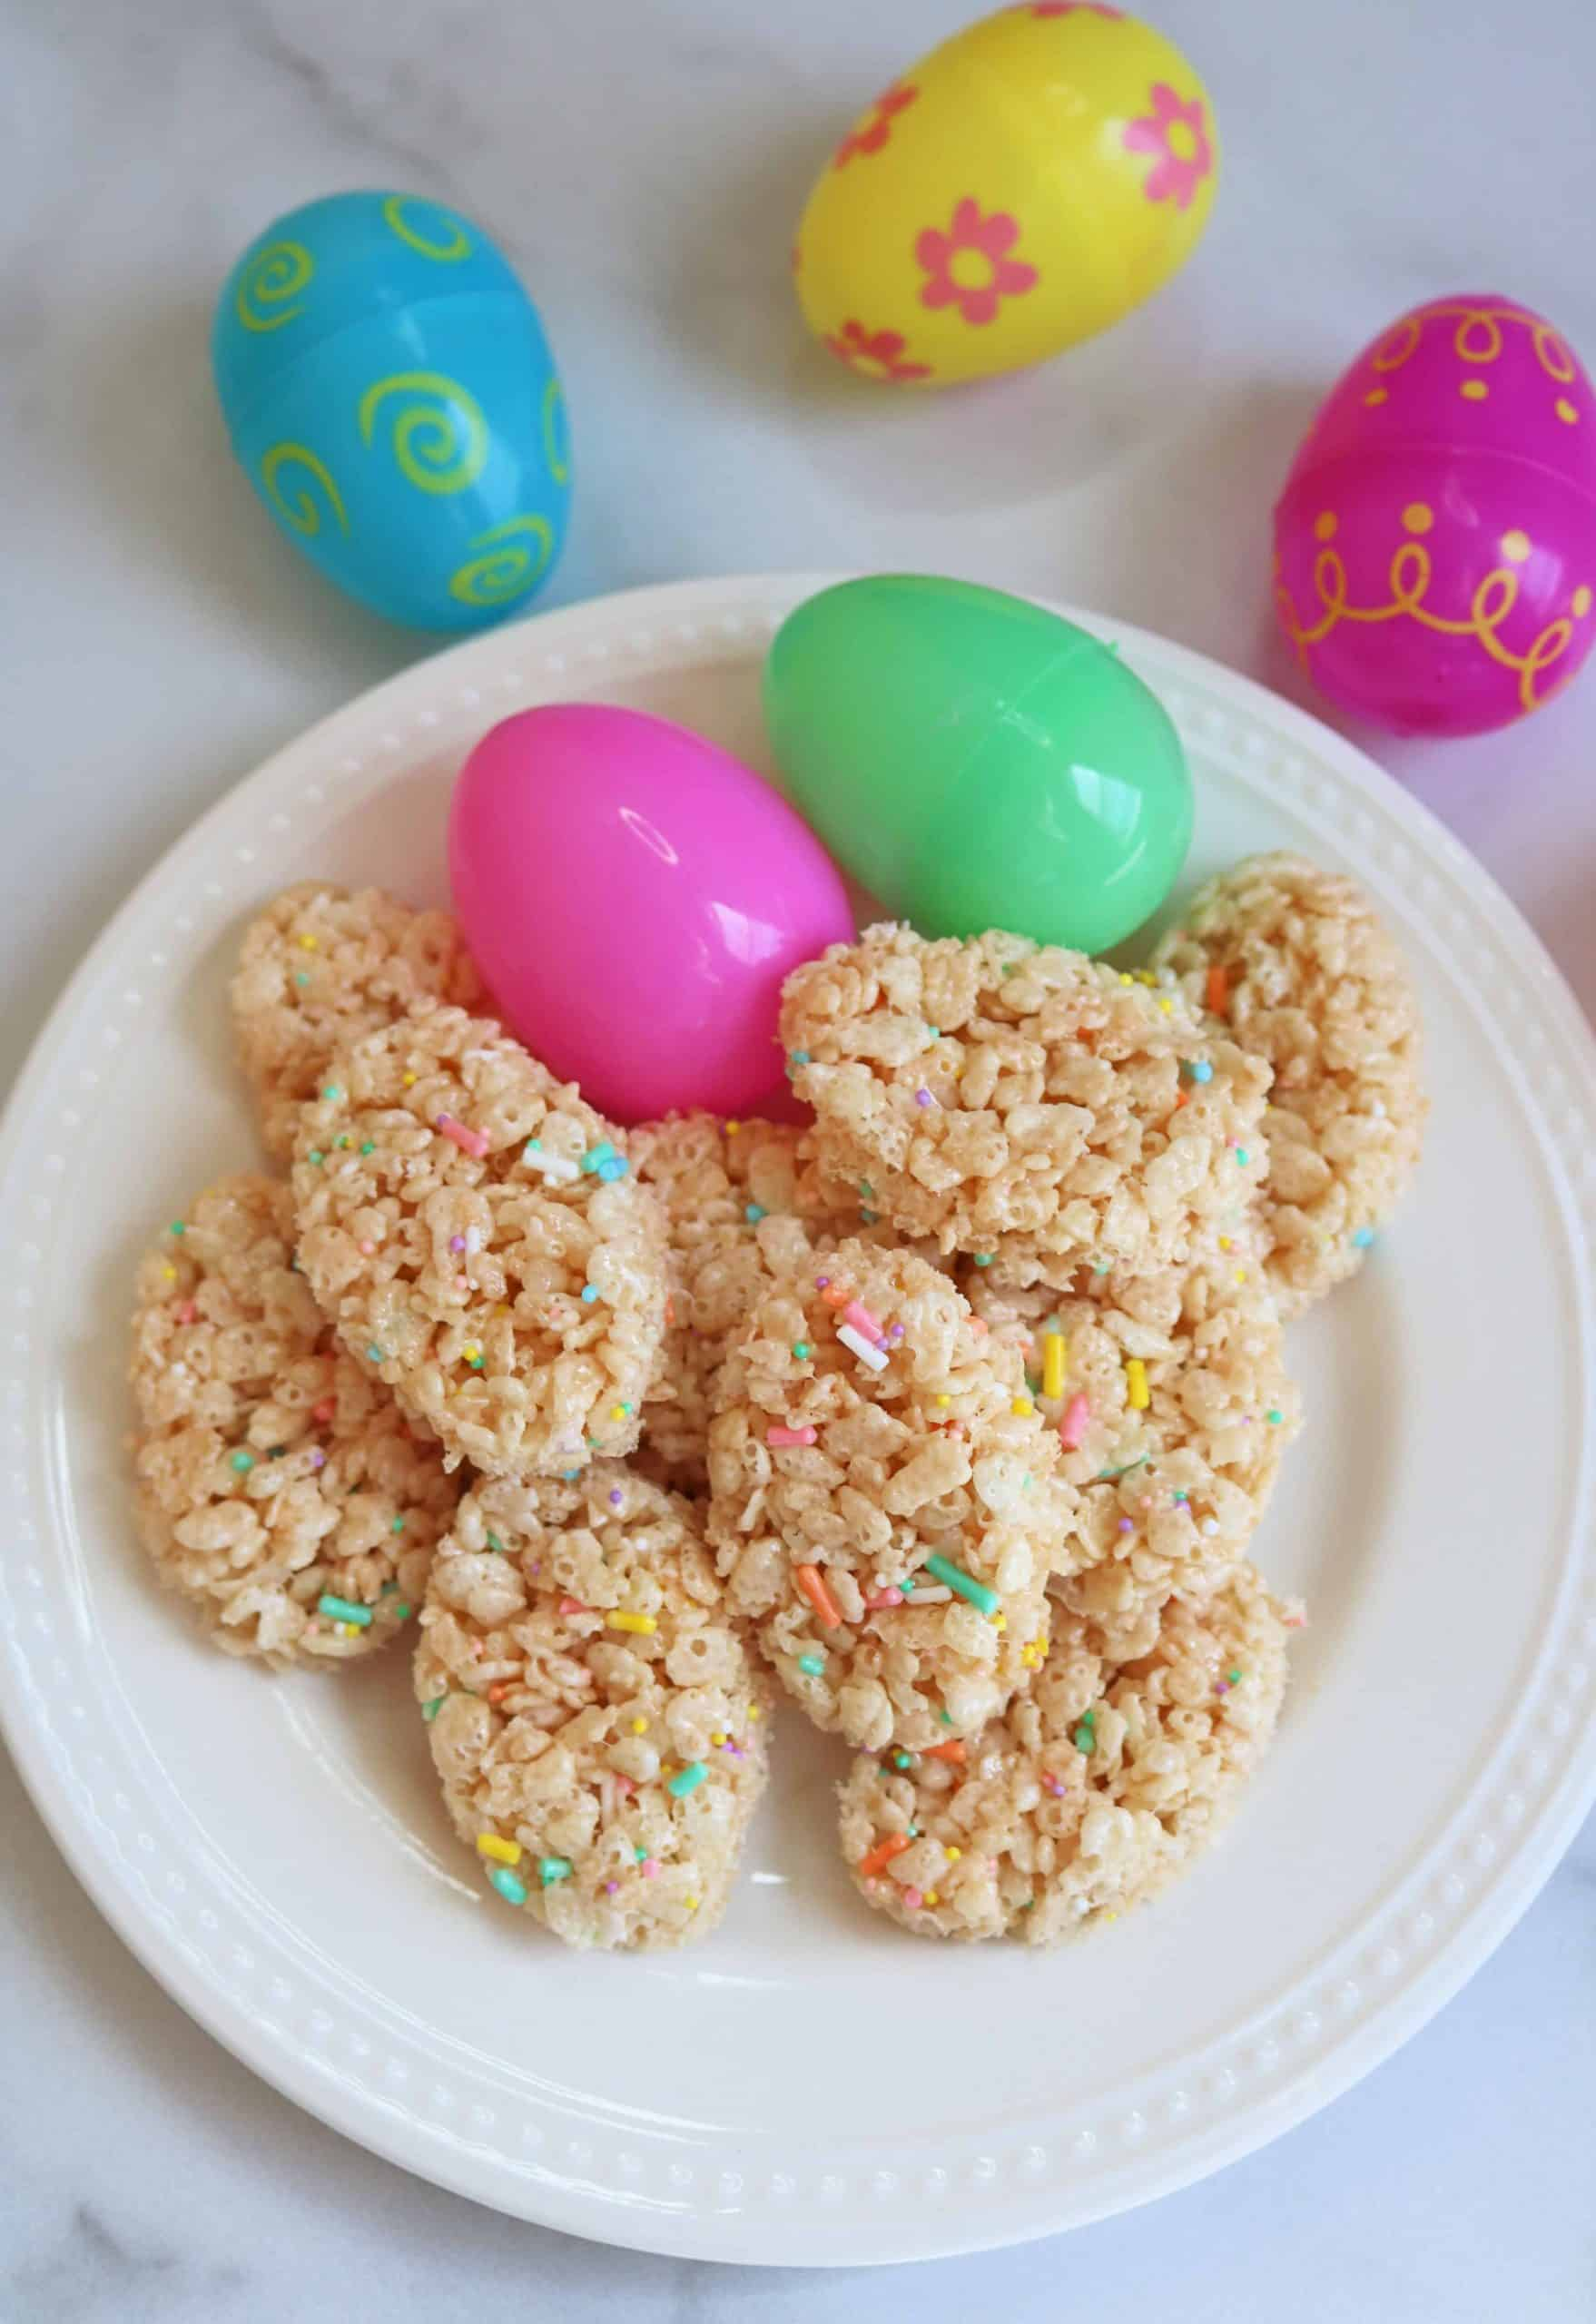 Make these Adorable Easter Egg Rice Krispie Treats for an easy, no bake dessert for Easter Sunday! Kids and adults will love these yummy Easter Rice Krispie treats and all you need is an egg cookie cutter and some sprinkles! #ricekrispietreats #ricekrispies #easterrecipes #easterdesserts #nobake